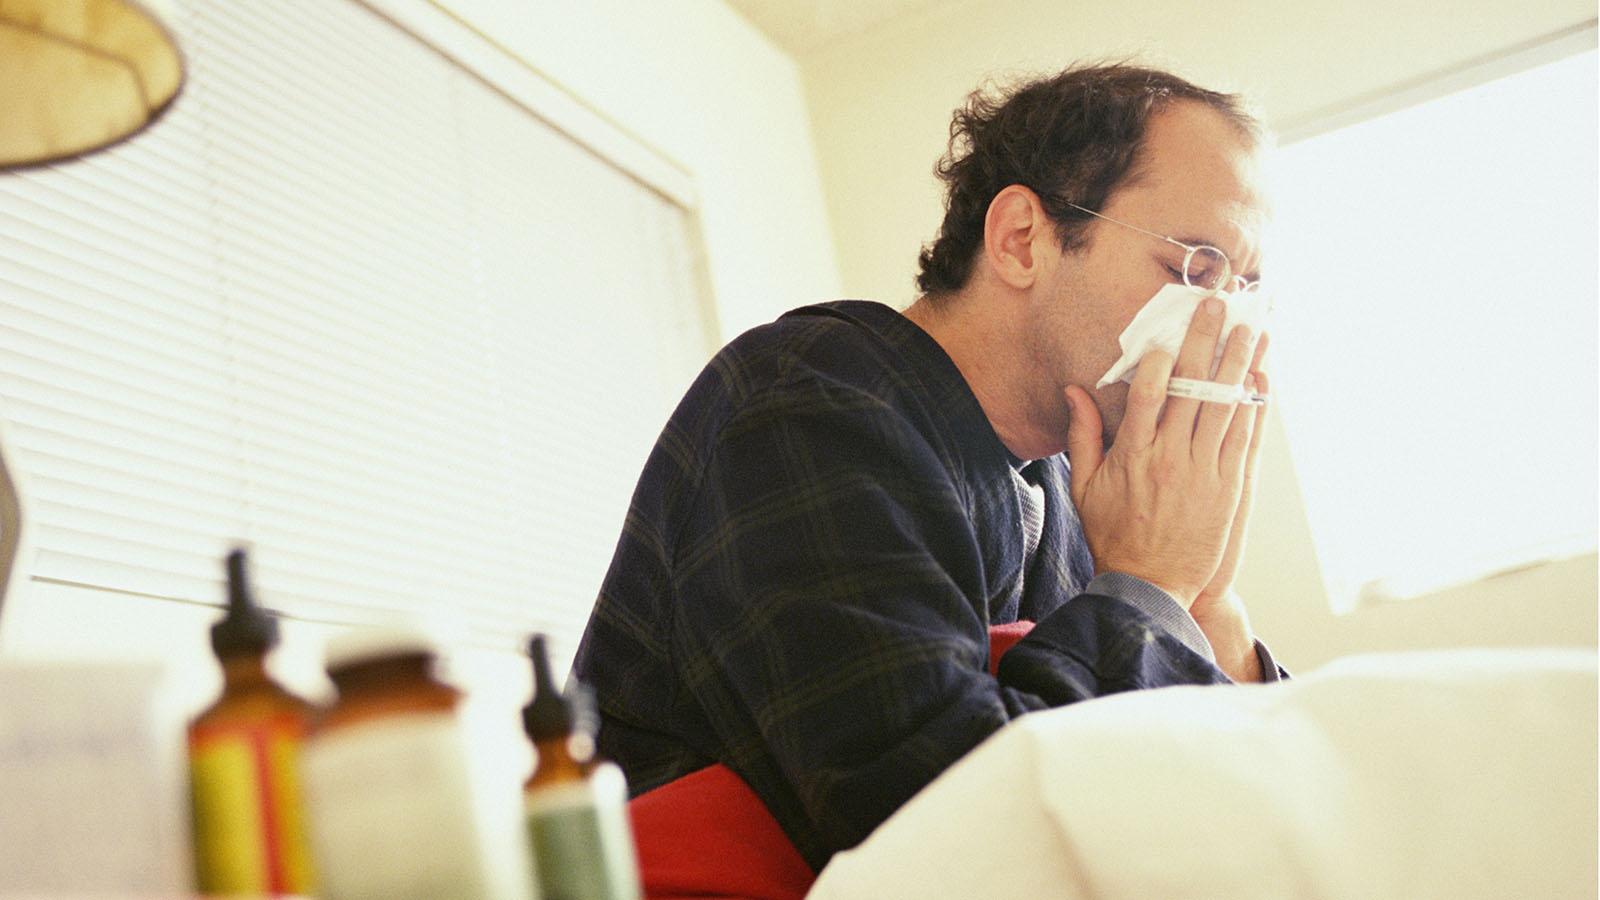 Man sick in bed blowing his nose.  Marc Romanelli/Getty Images